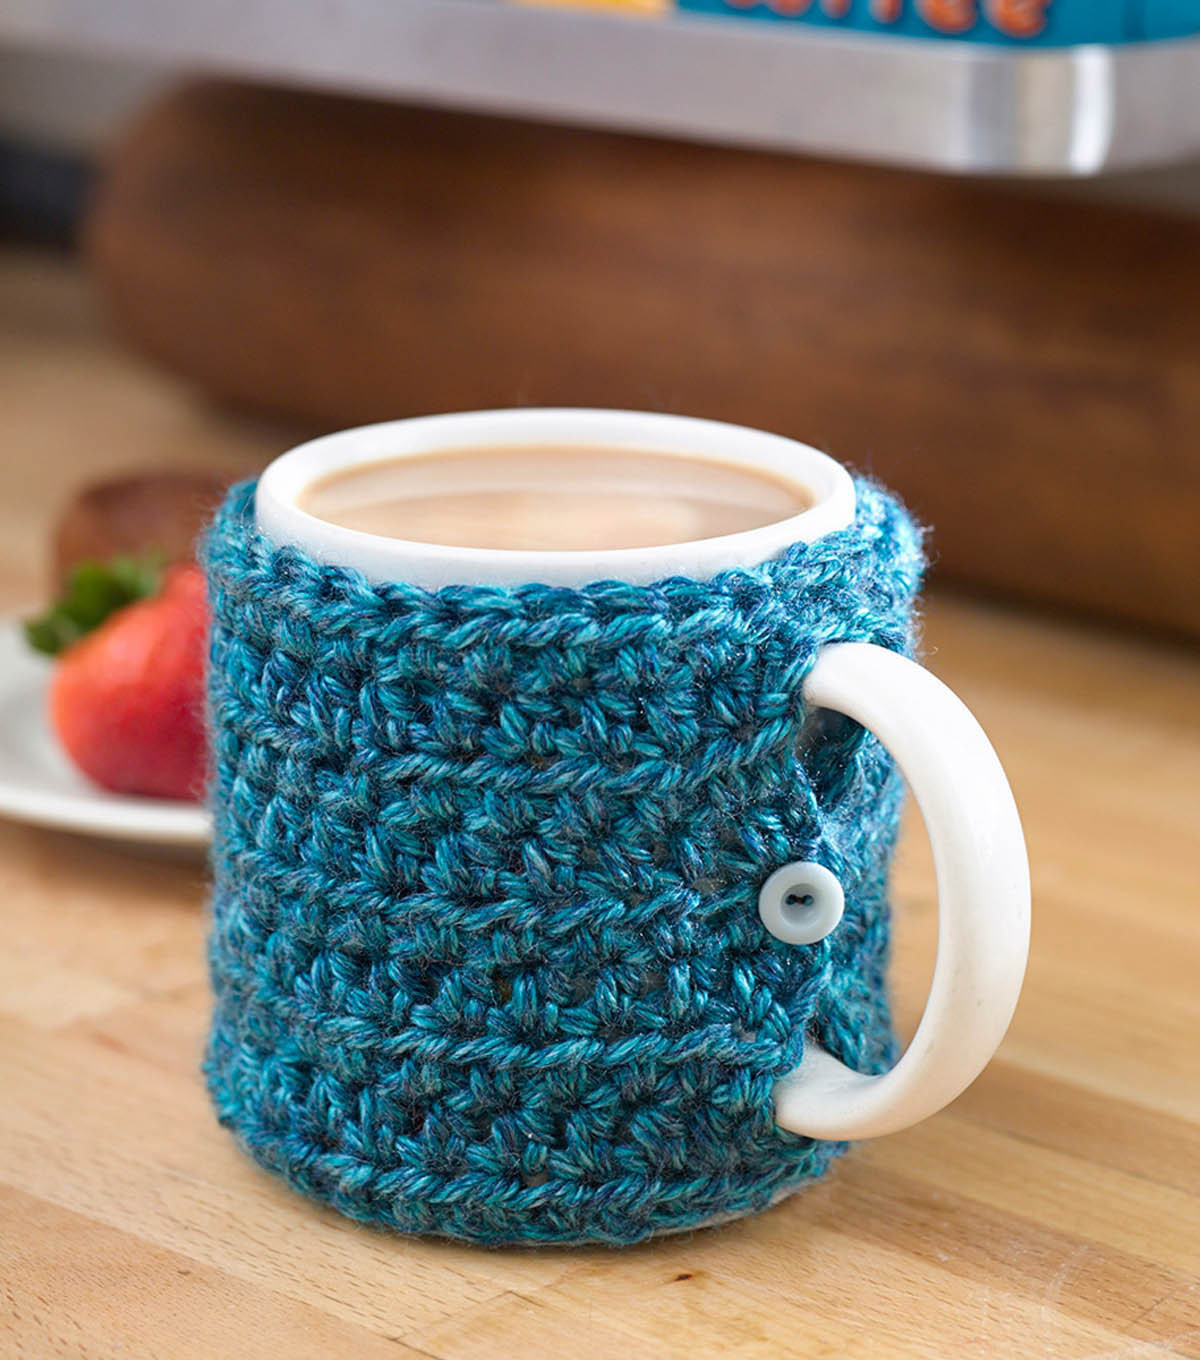 Crochet Coffee Cup Cozy Best Of Craftdrawer Crafts Free Easy to Crochet Mug Cozy Patterns Of Crochet Coffee Cup Cozy Unique Mrsbrits Ribbed Coffee Cozy Crochet Pattern